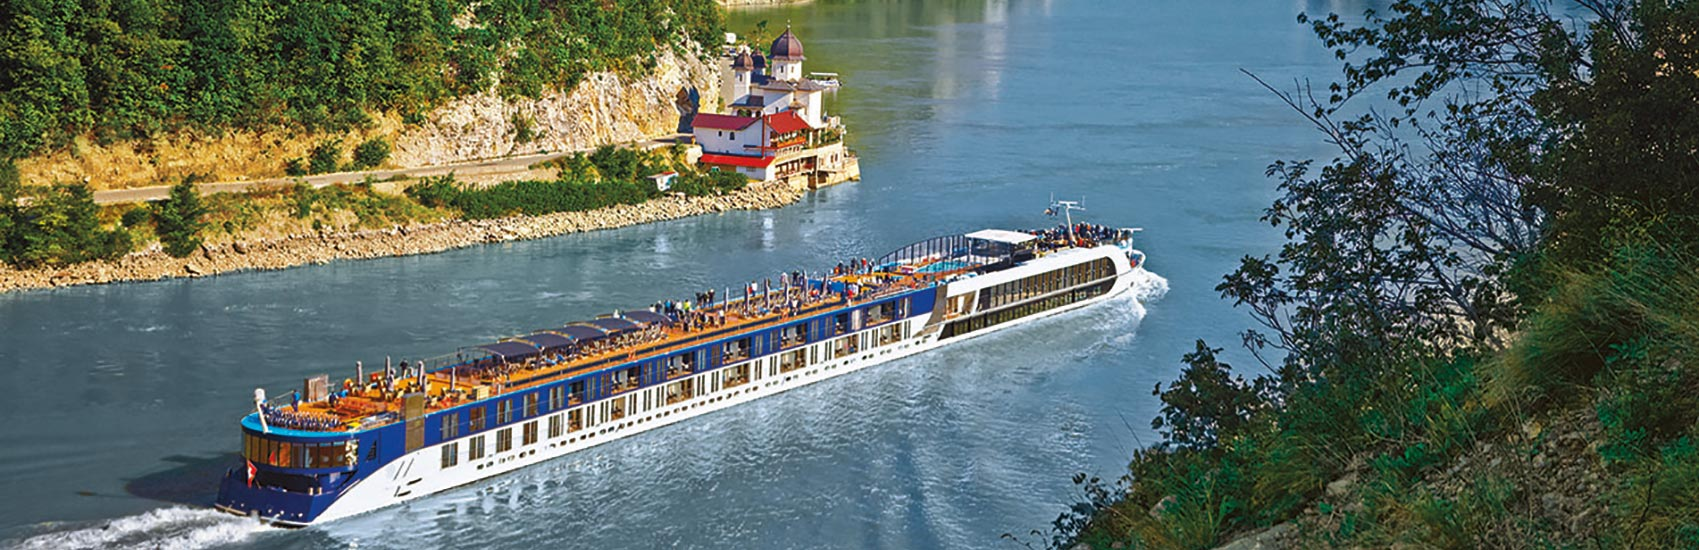 Special Savings on European River Cruises with AmaWaterways